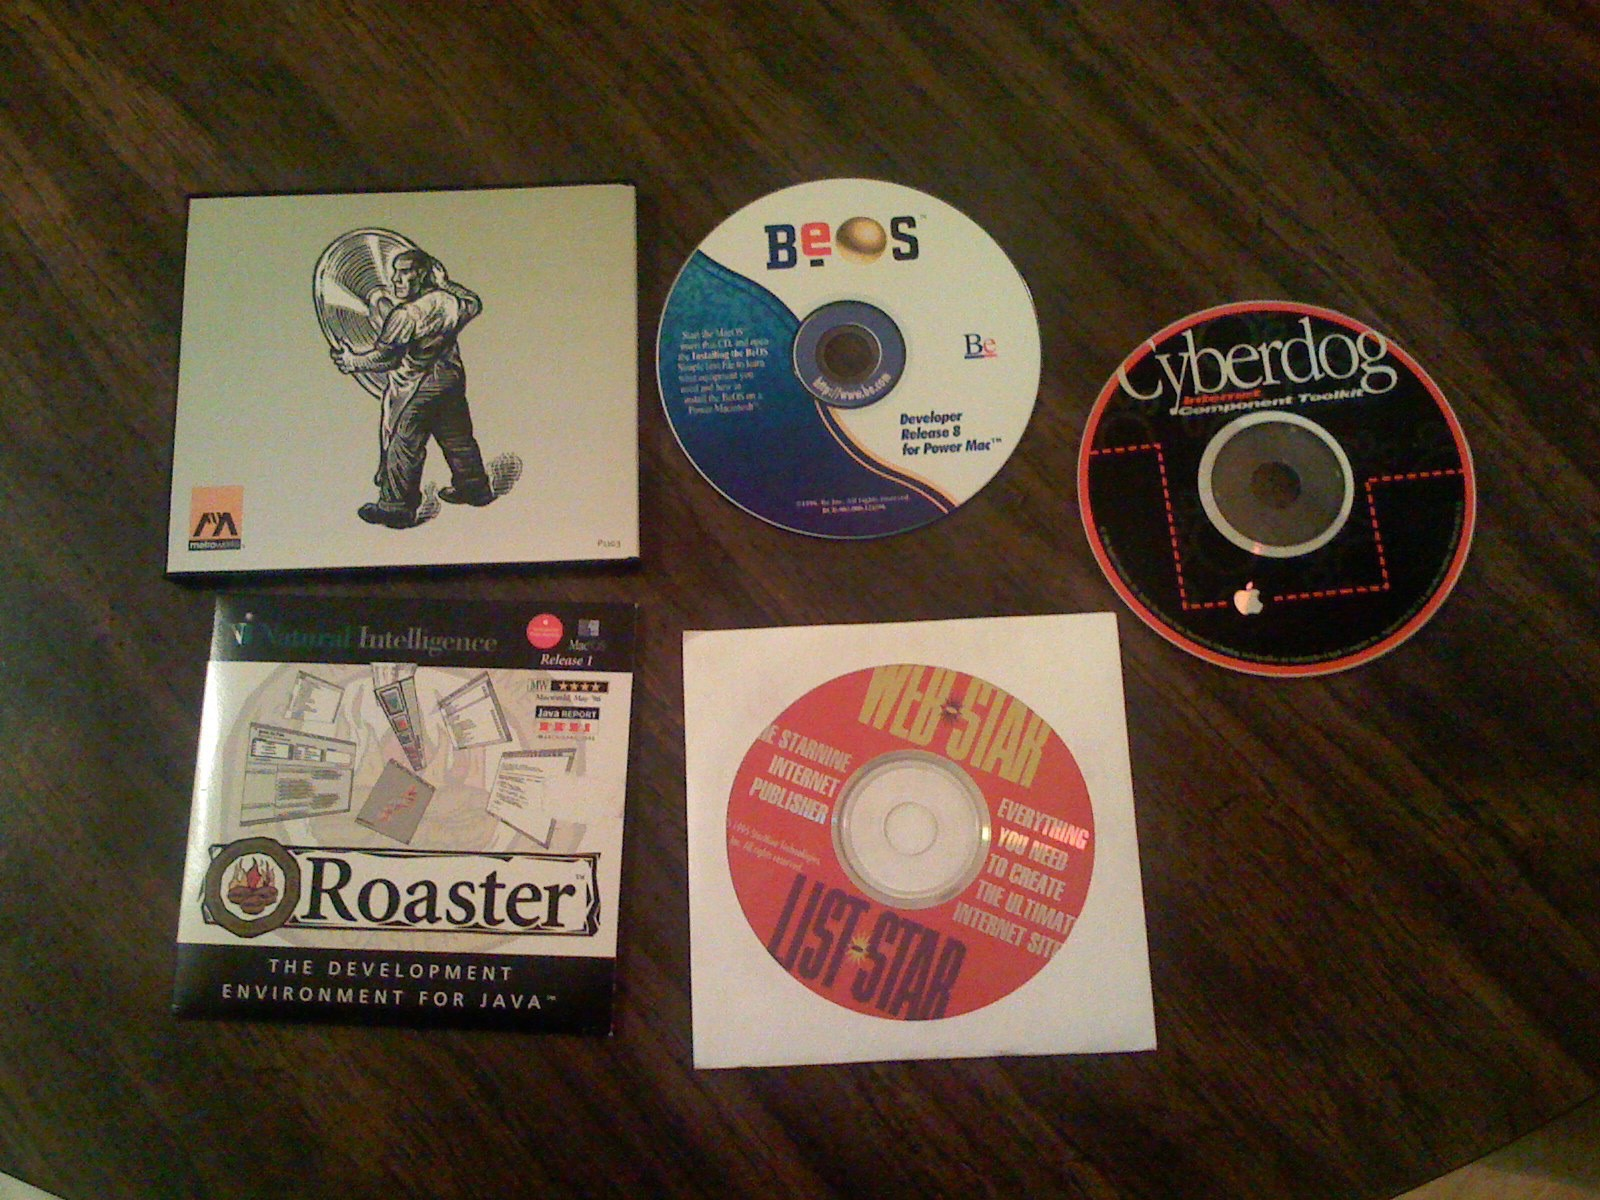 Compact discs and DVDs on a table: CodeWarrior, BeOS, Cyberdog, Roaster, and WebSTAR and ListSTAR.